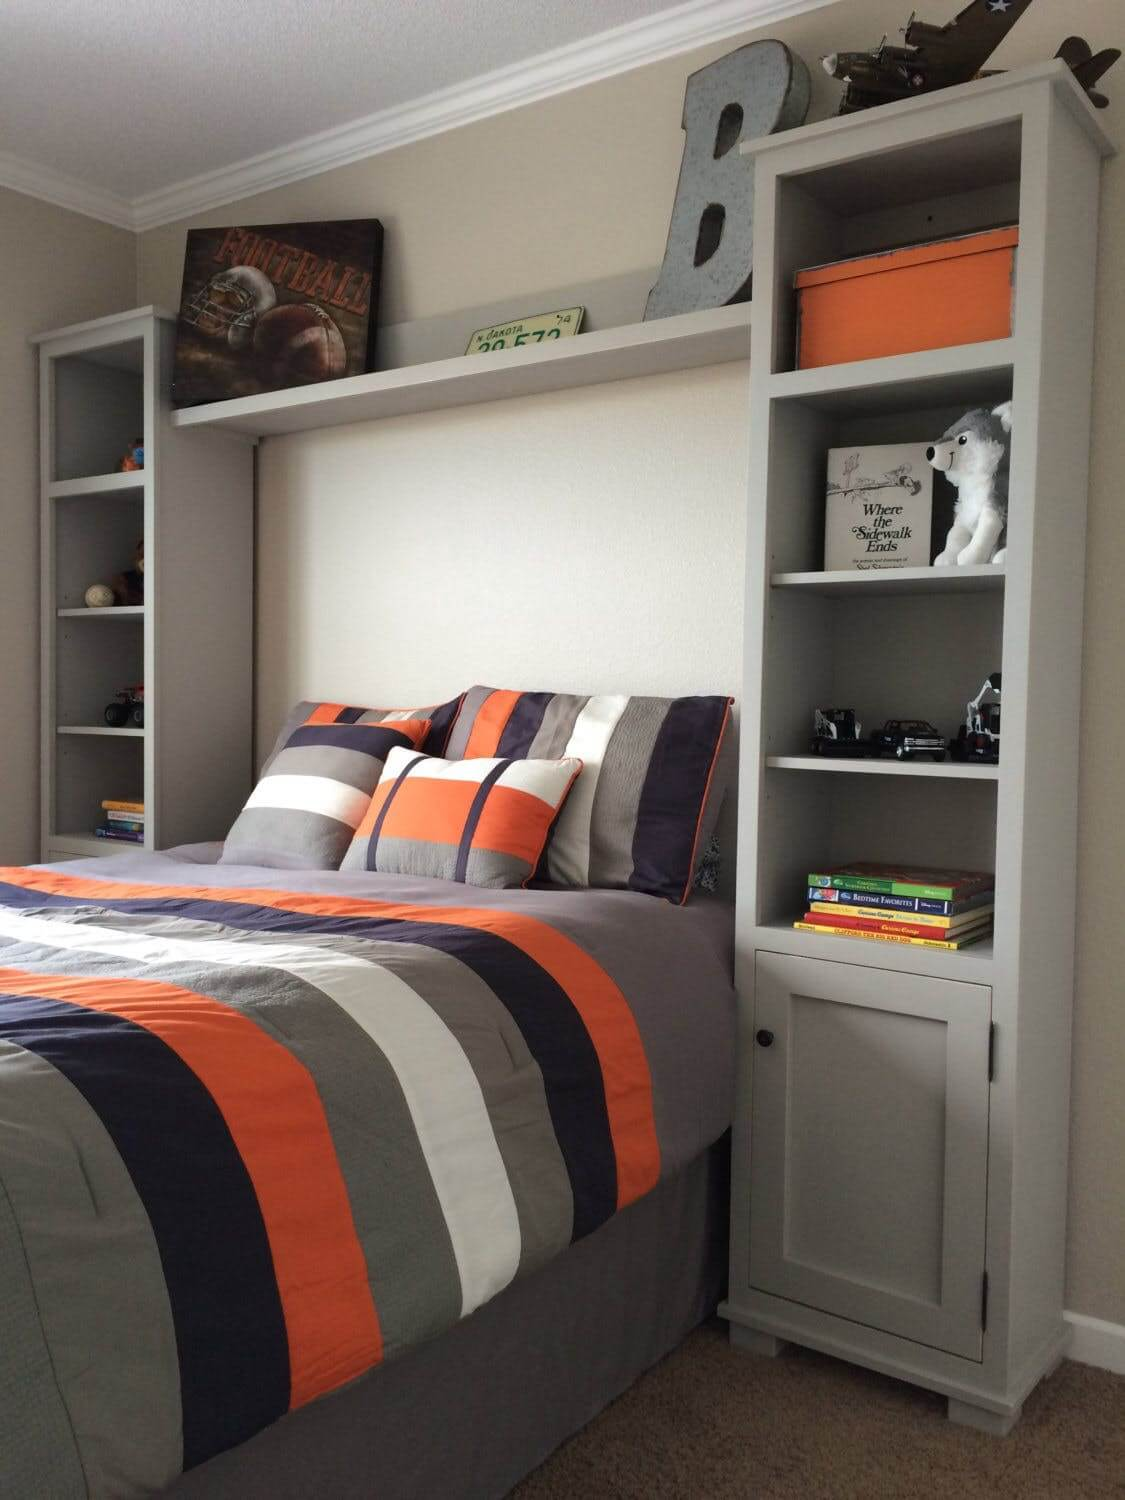 prodigious Boys Room Decoration Ideas Part - 18: Bold Colors Teenage Boy Room Idea